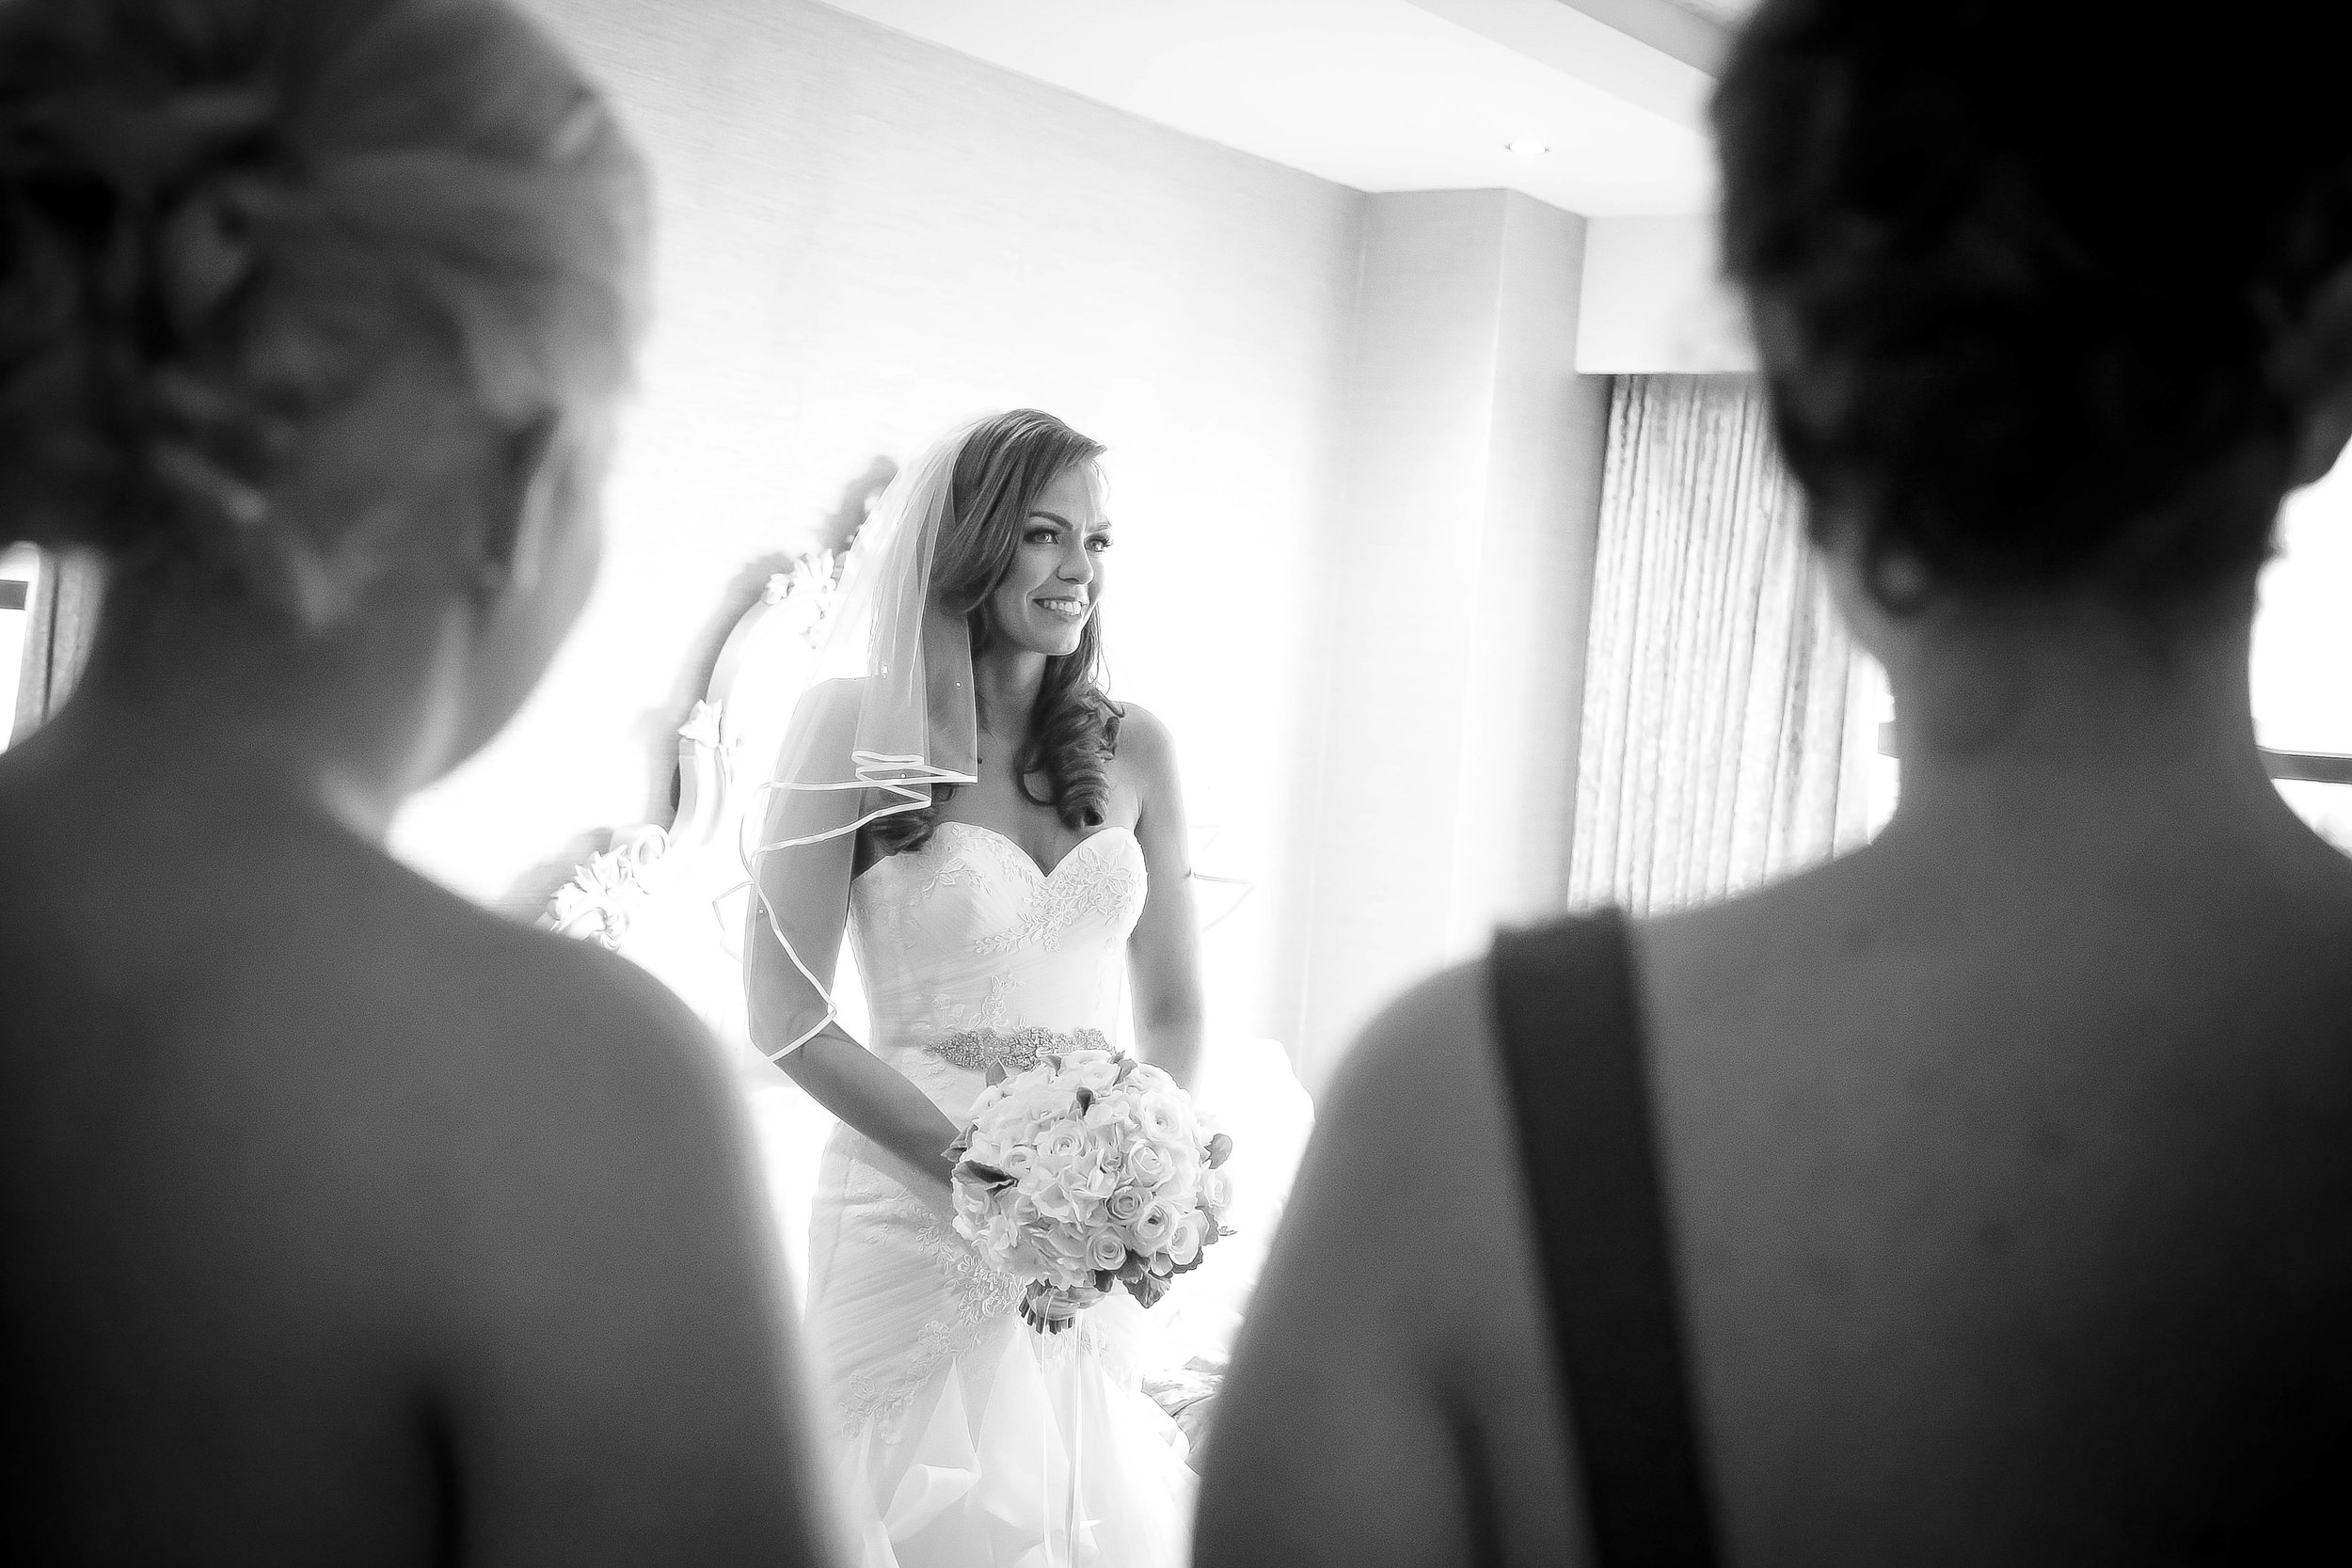 Weddings at the shankly hotel liverpool-45.jpg